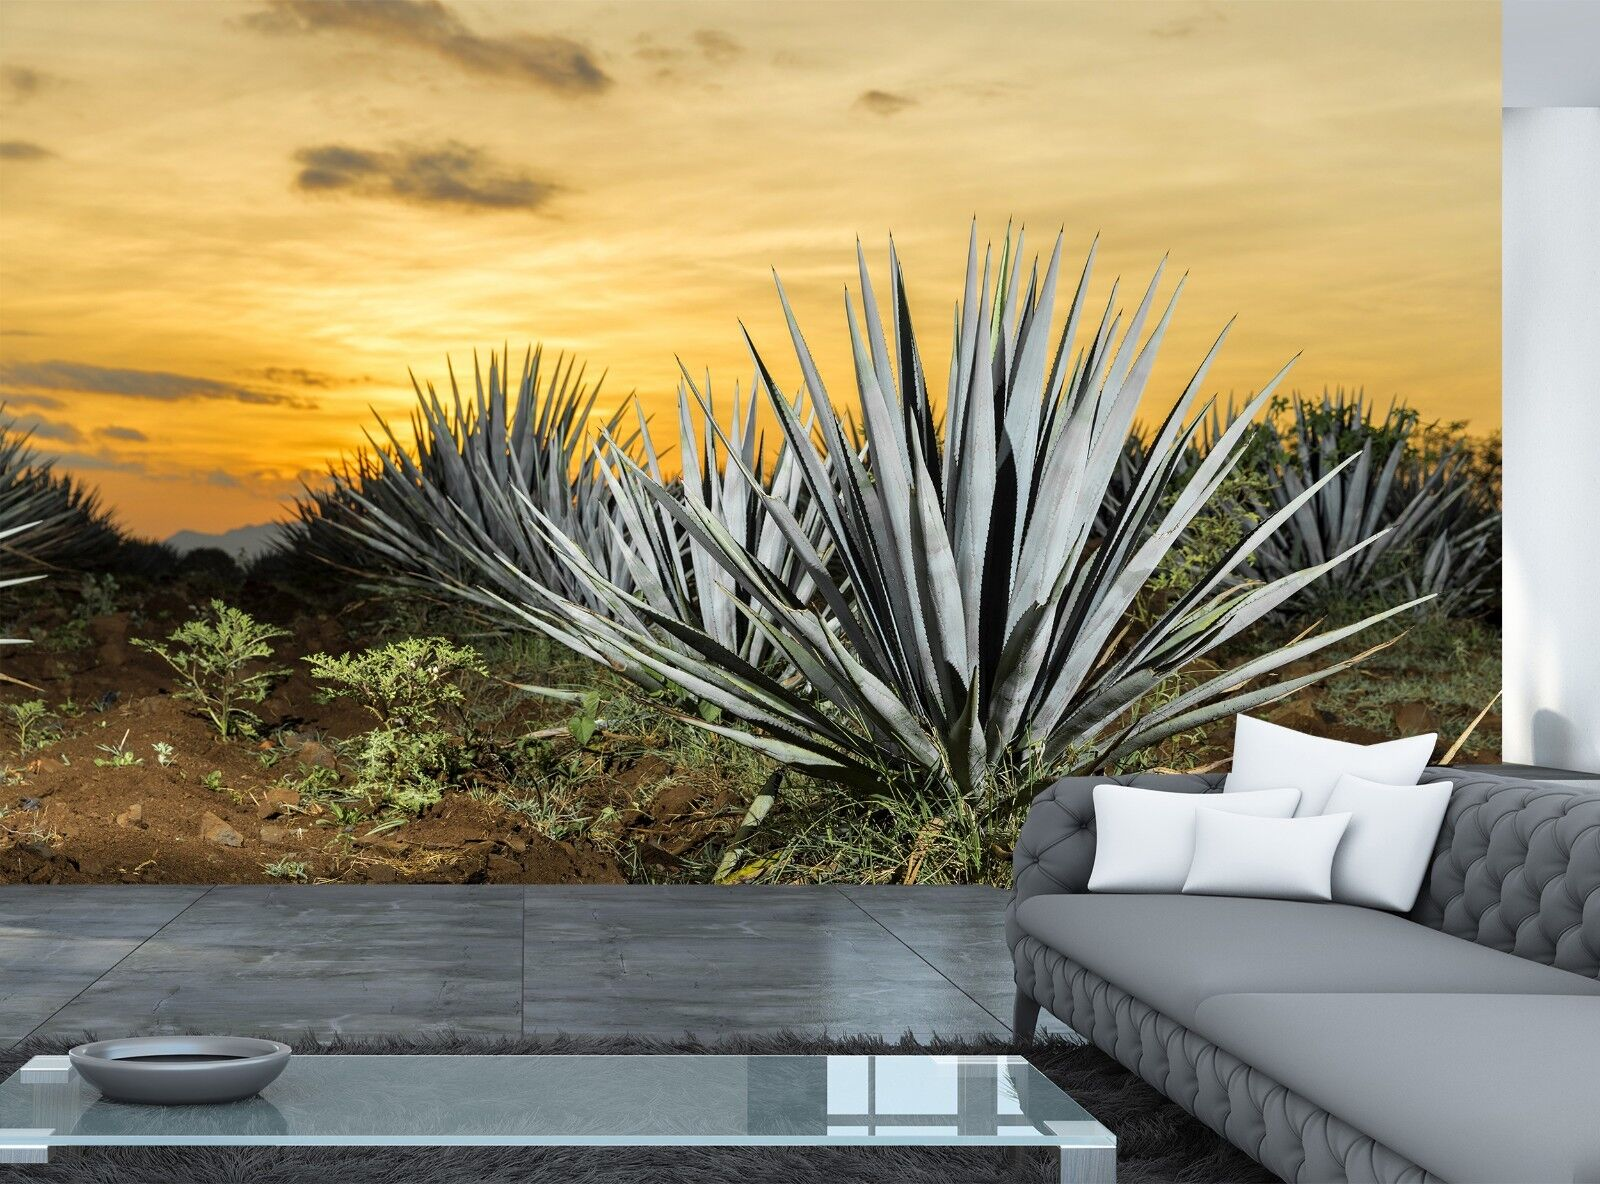 Removable Wall Mural LanimioLOX Sharp Pointed Agave Plant Leaves Self-Adhesive Large Wallpaper